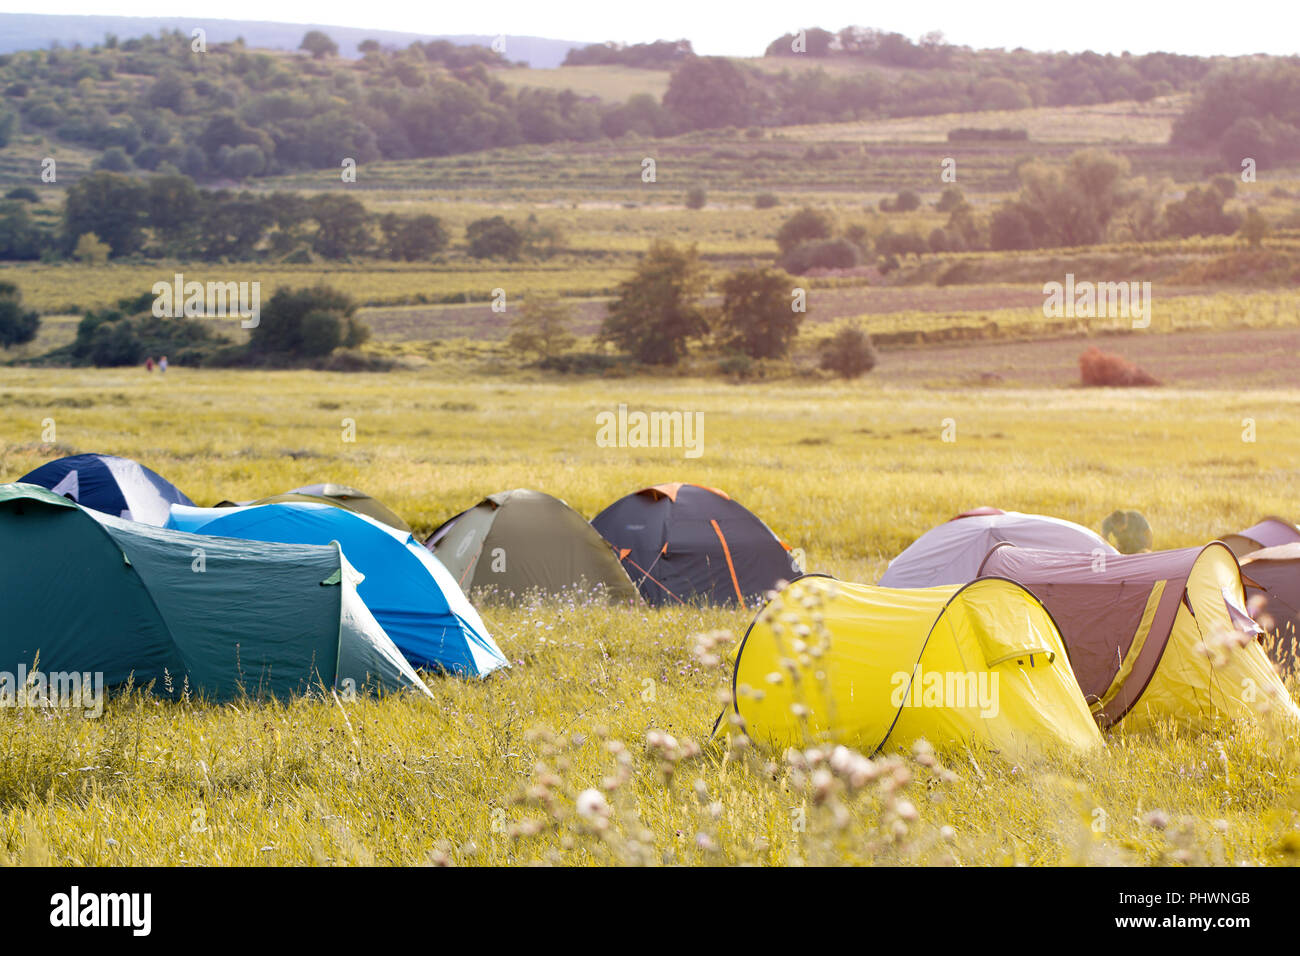 summer camping tents - Stock Image